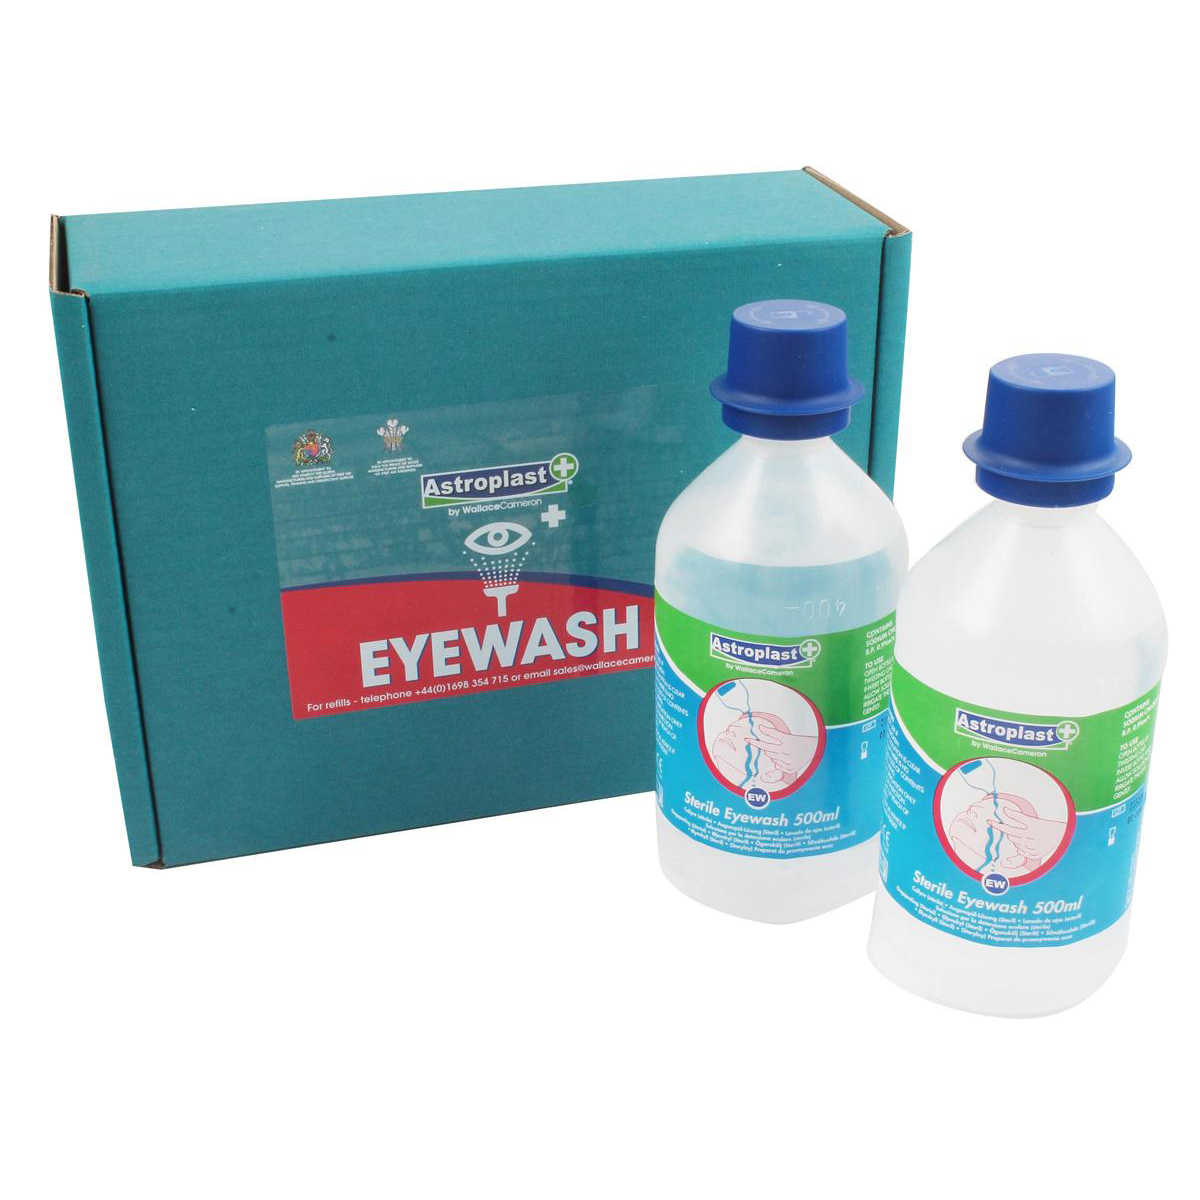 Wallace Cameron Astroplast Eyewash Sterile Water Bottles for Eye Care Disp 500ml Ref 2404039 [Pack 2]